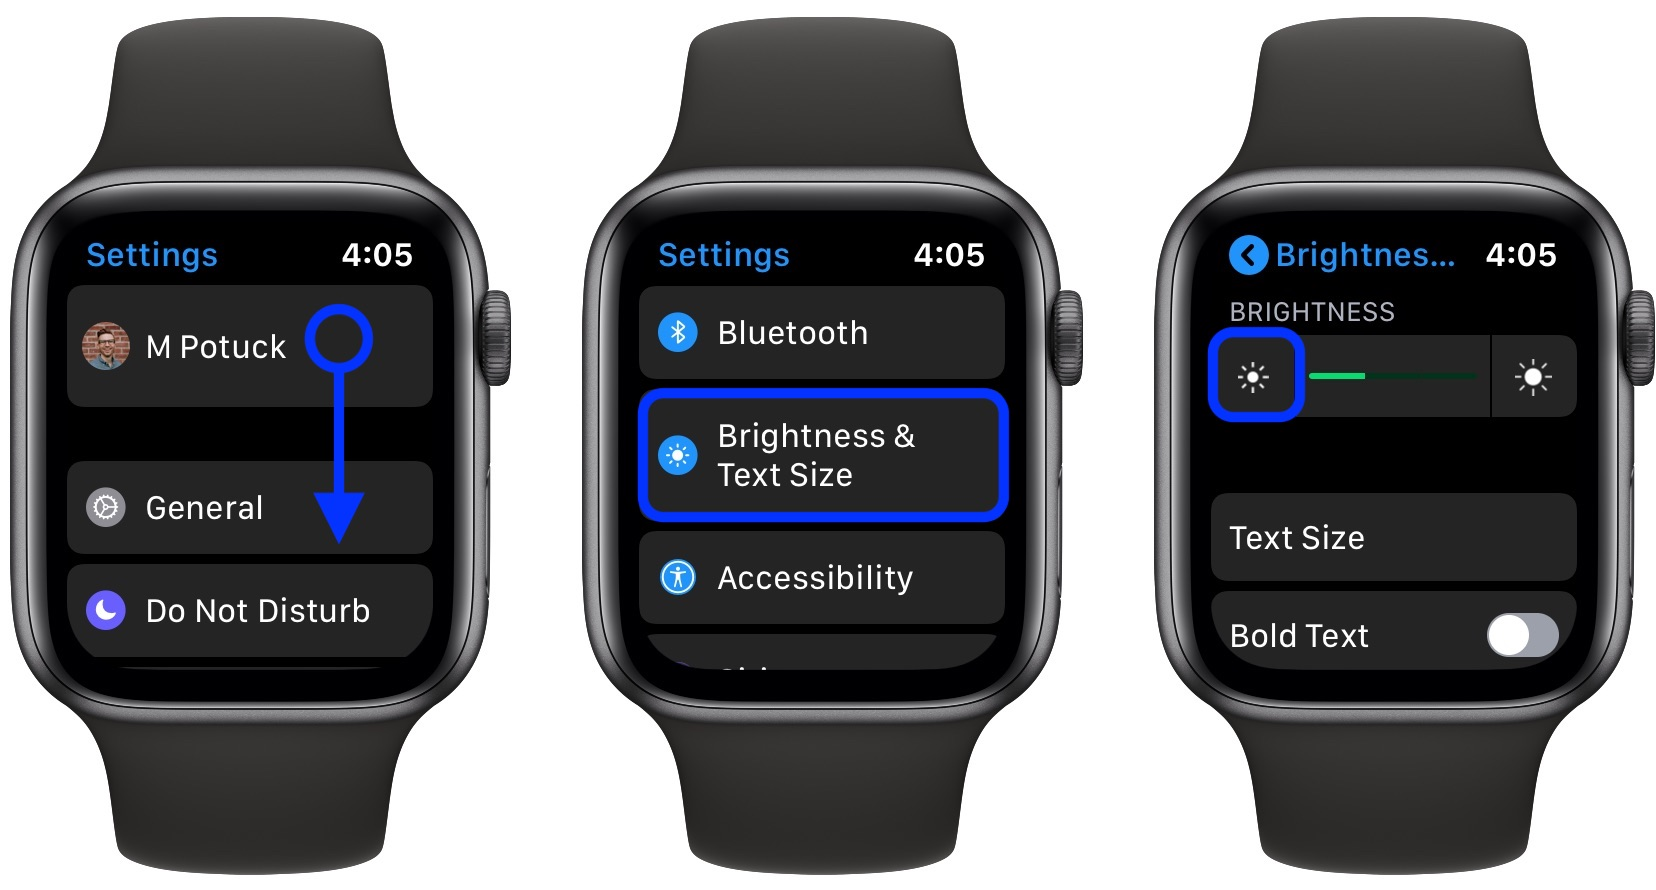 How to extend Apple Watch battery life while traveling